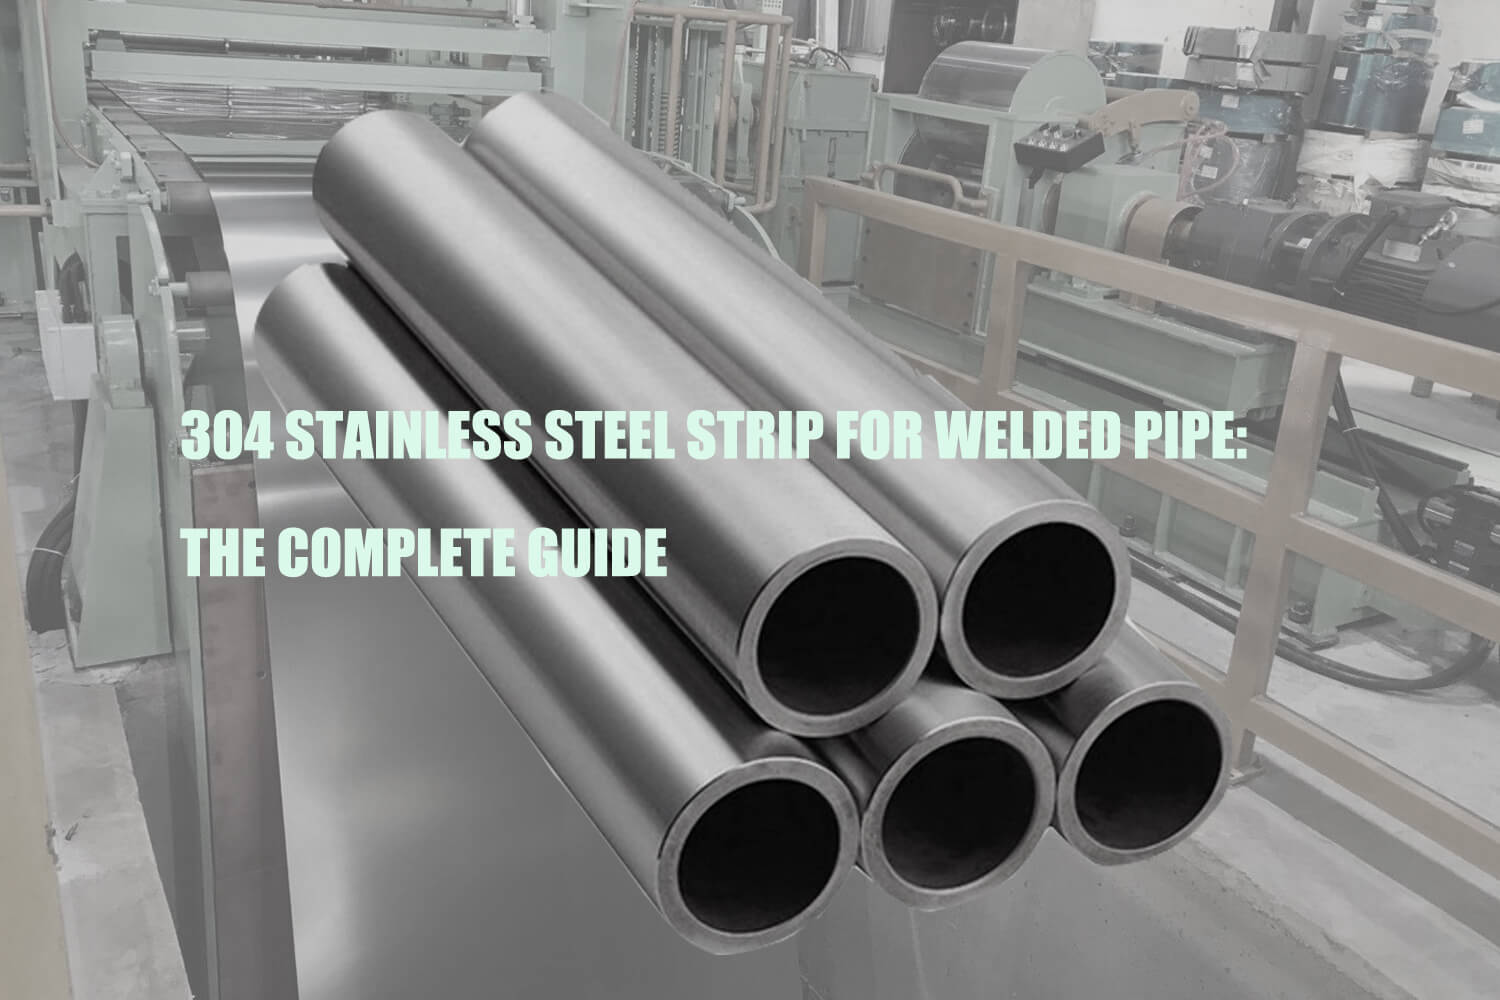 304-stainless-steel-strip-for-welded-pipe